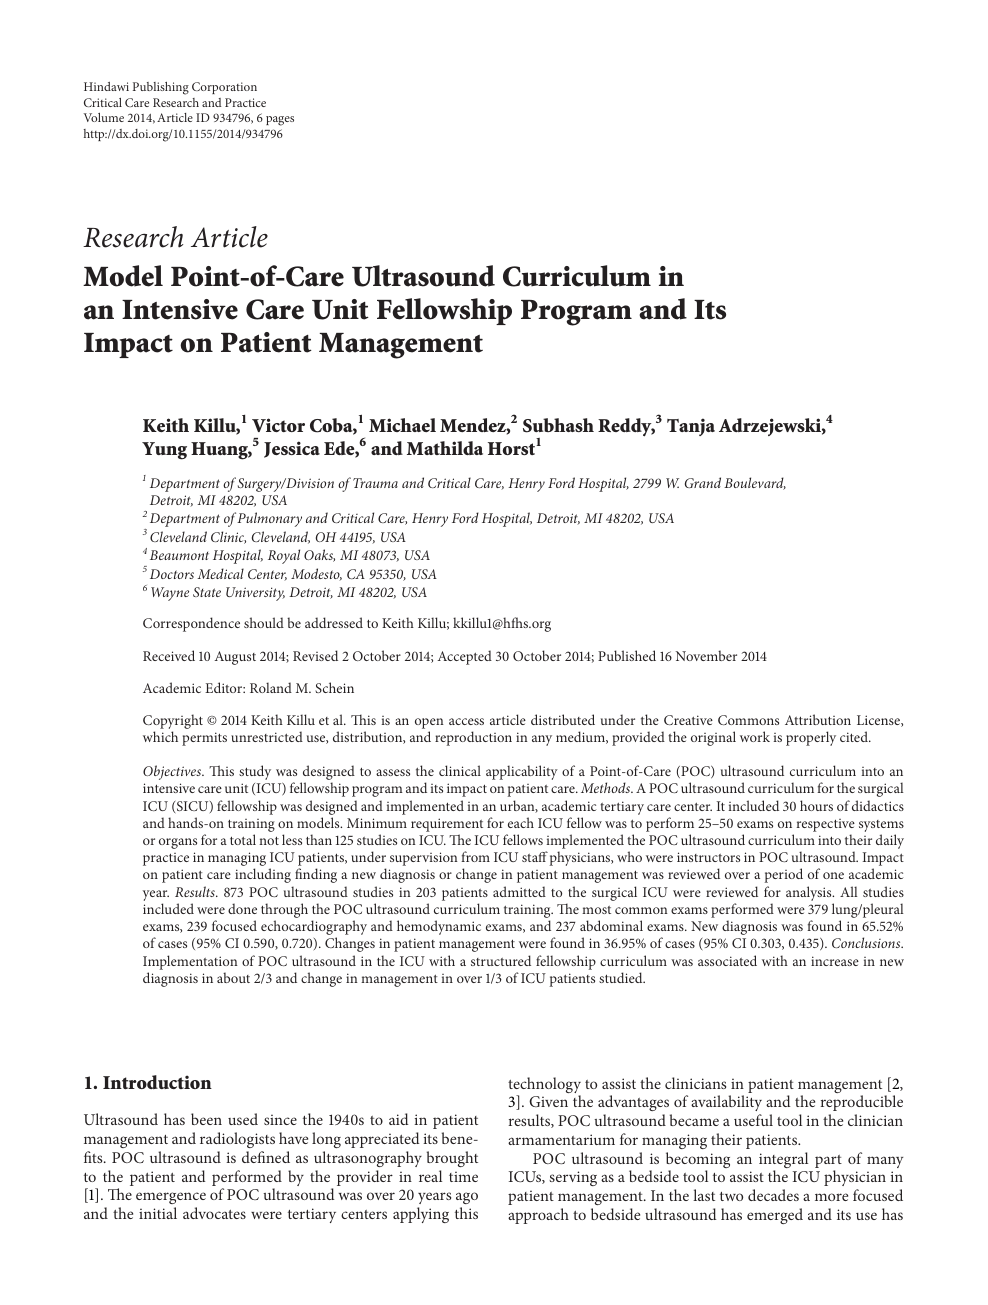 Model Point-of-Care Ultrasound Curriculum in an Intensive